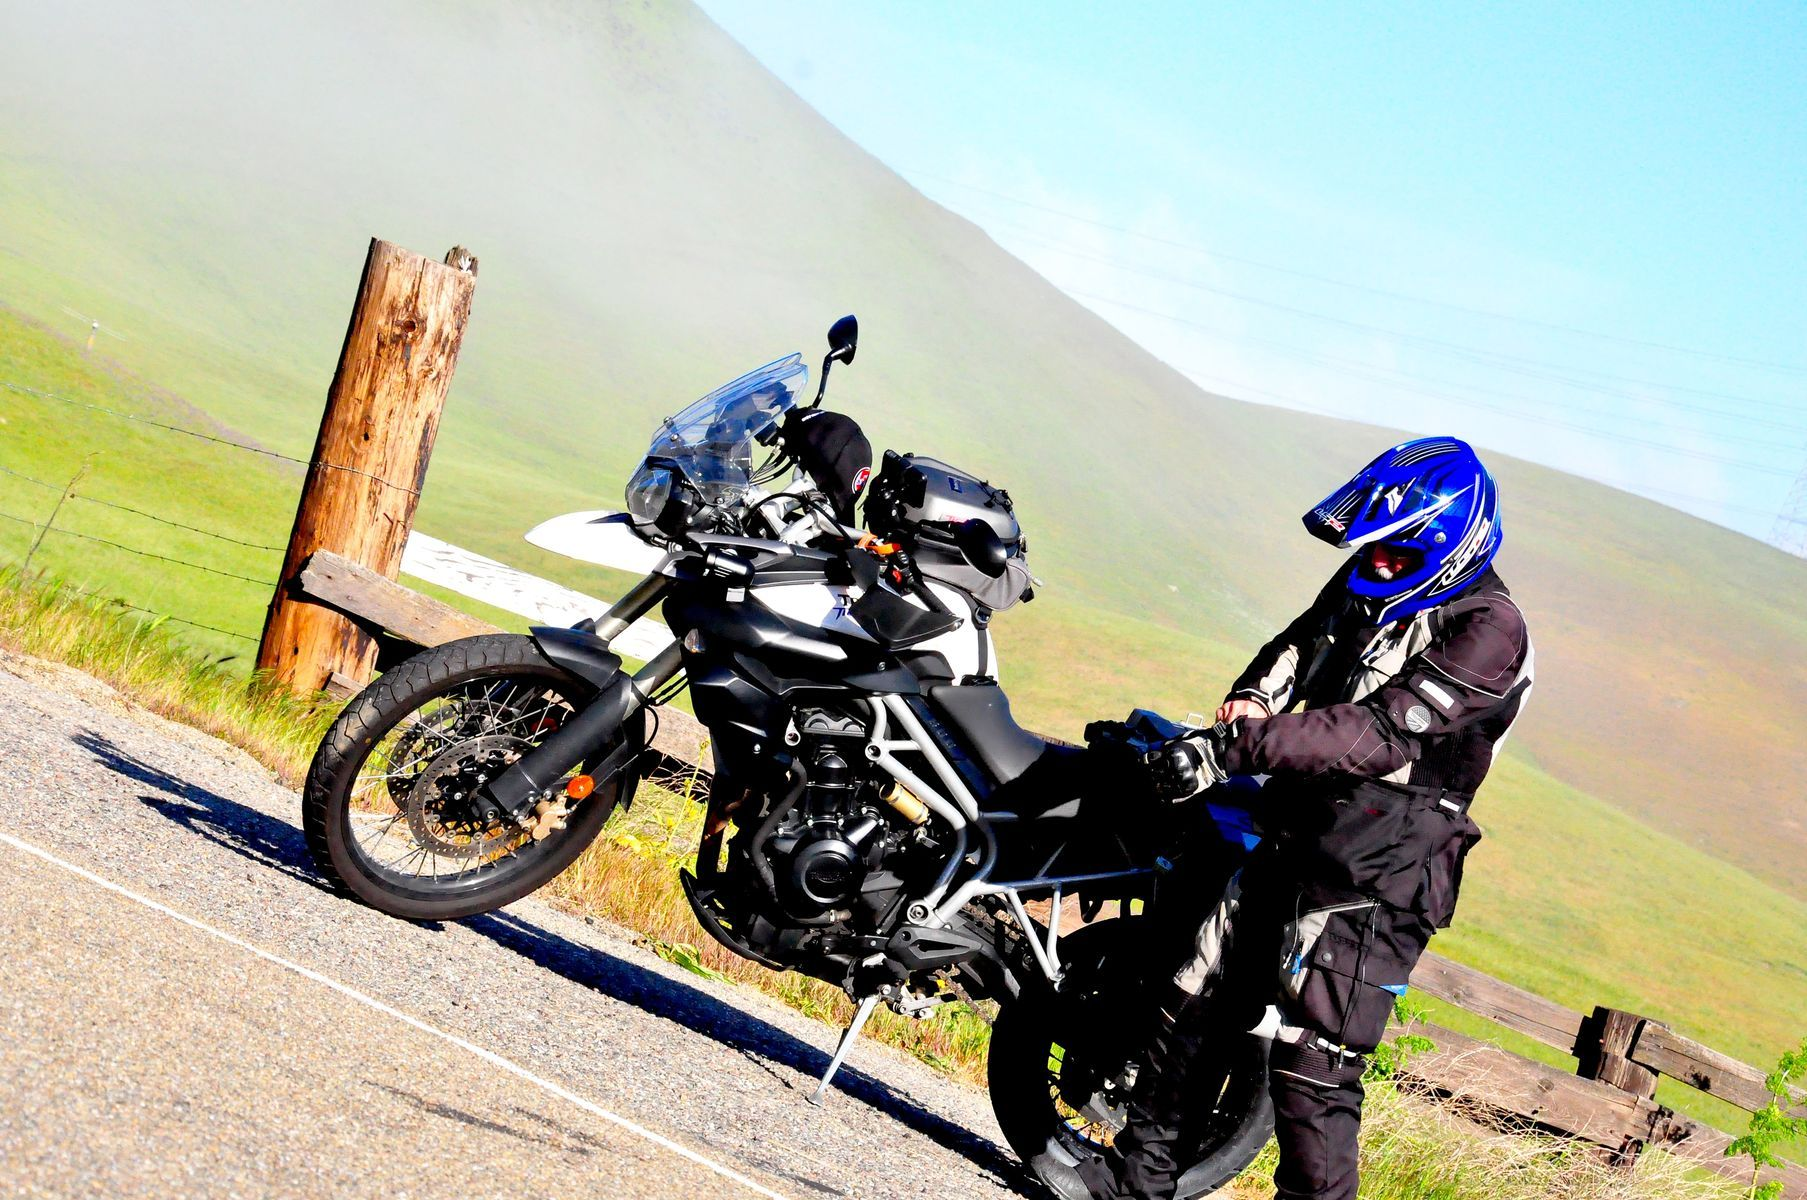 TRIUMPH TIGER 1050 | Open road